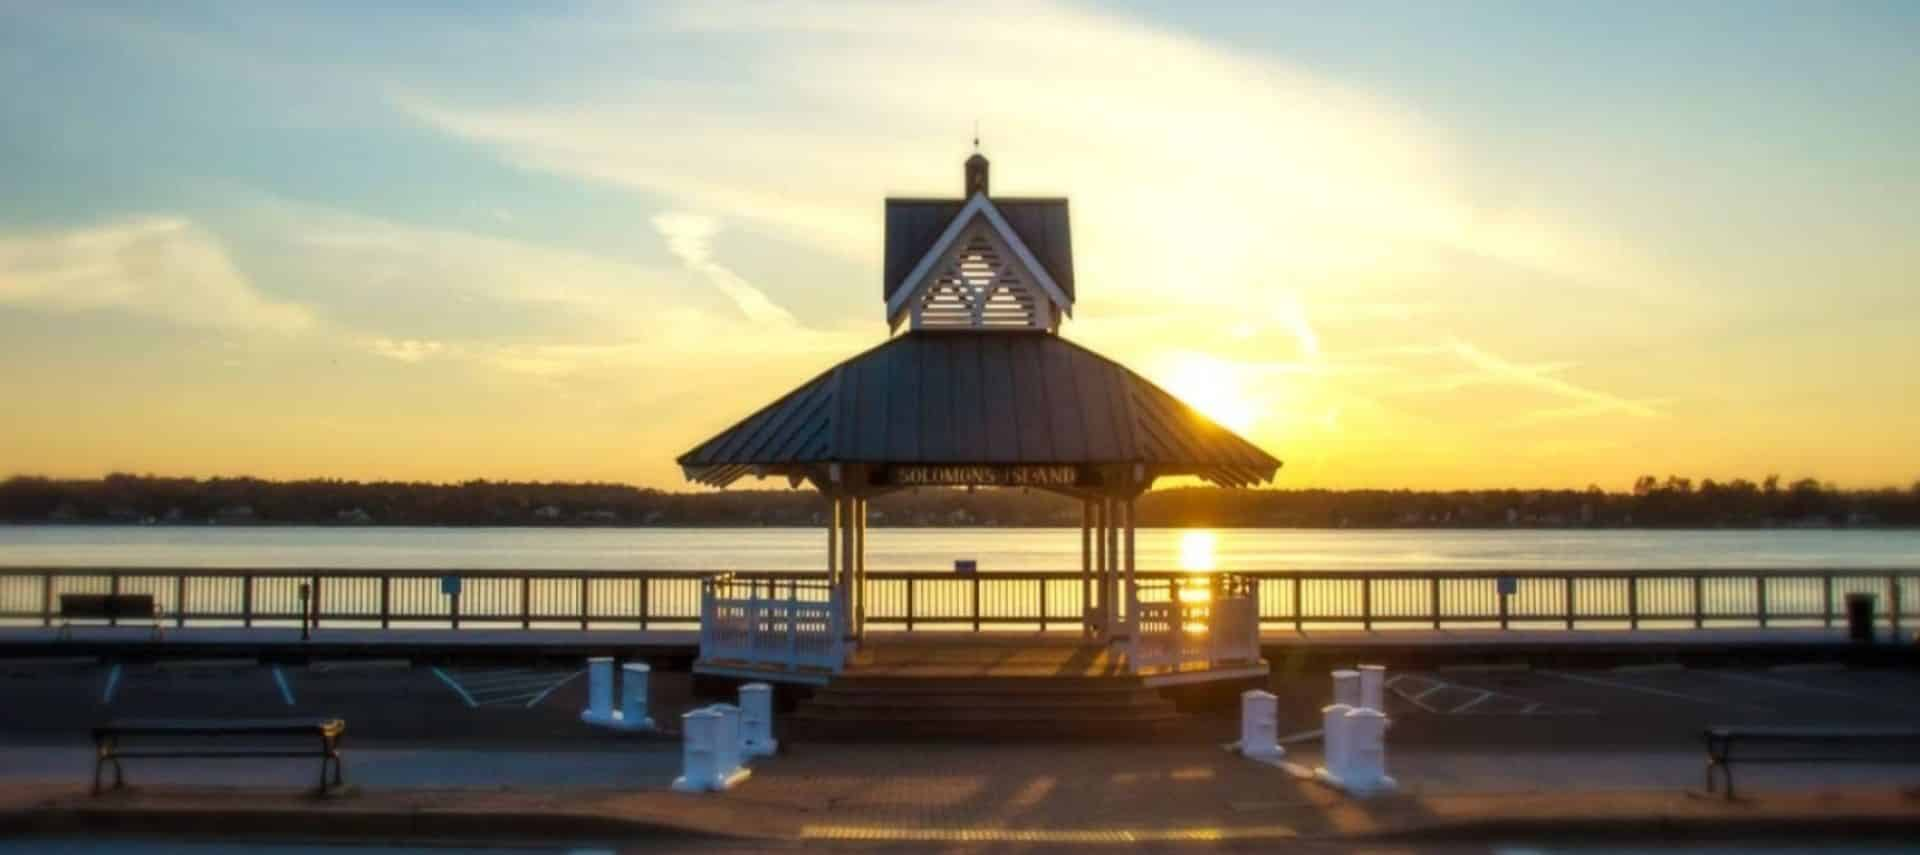 Wooden gazebo next to a body of water with land and the sunset in the background